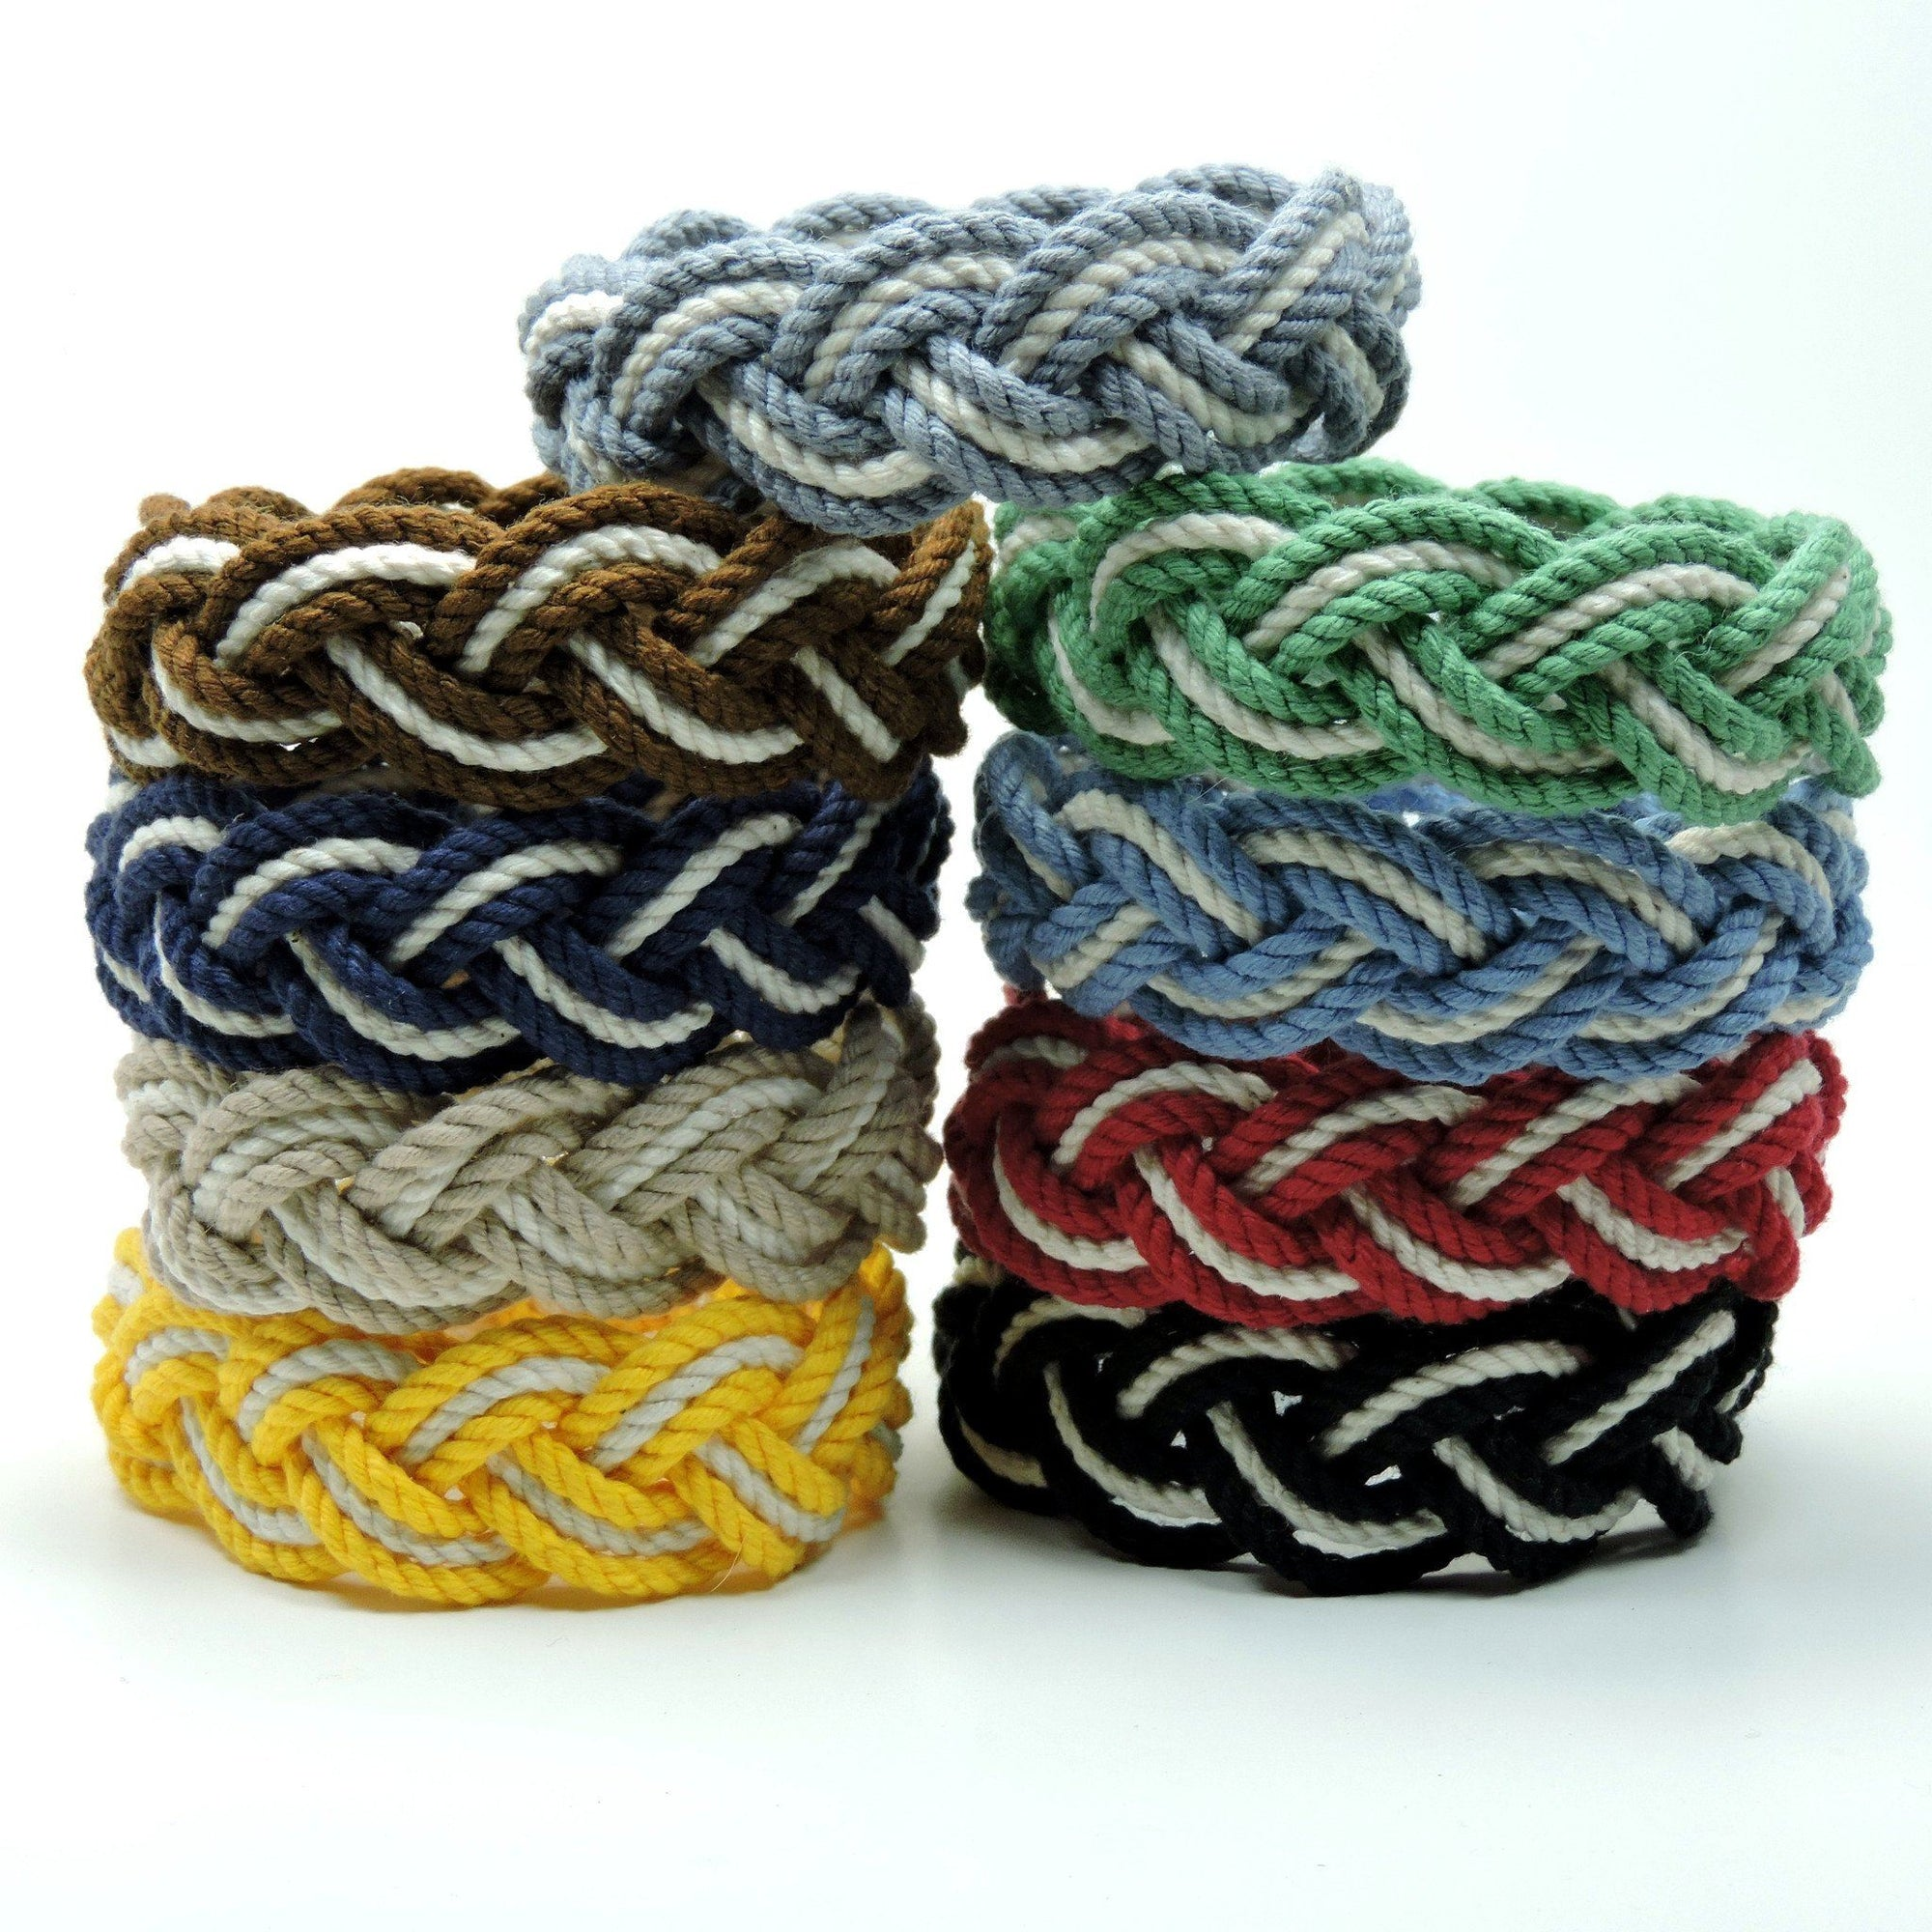 Nautical Striped Sailor Bracelet, Nautical Colors w/ White Stripe Handmade sailor knot American Made in Mystic, CT $ 4.80